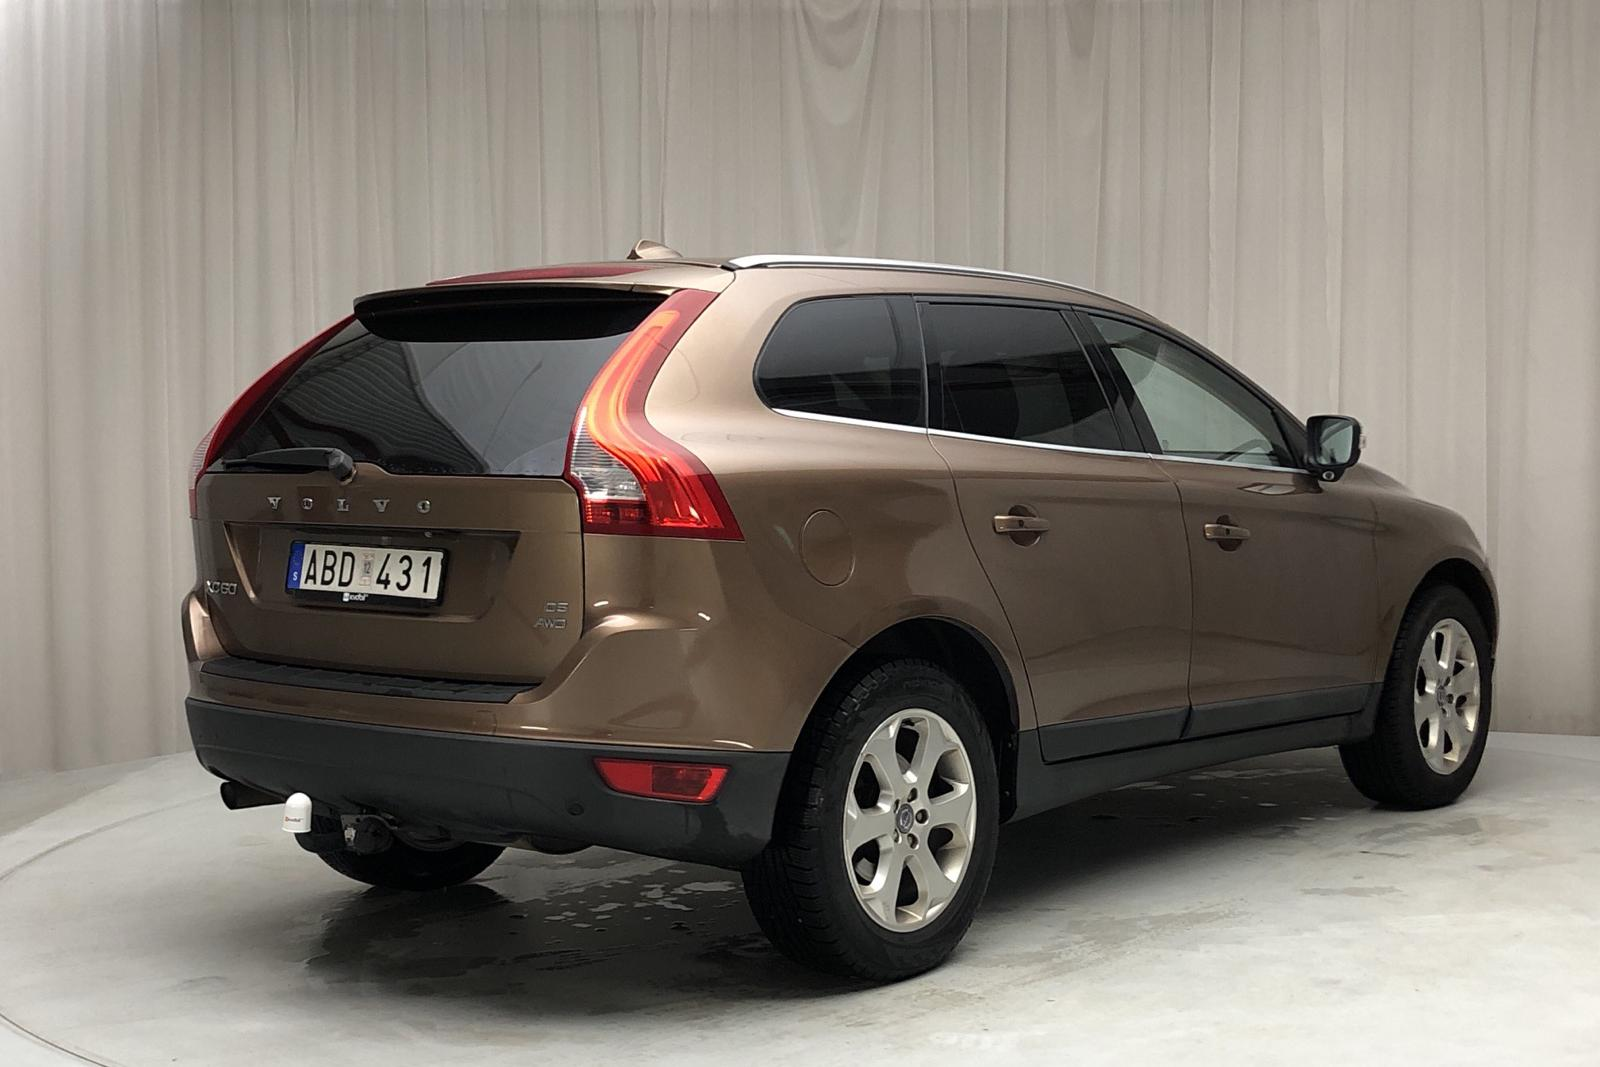 Volvo XC60 D5 AWD (185hk) - 246 980 km - Automatic - brown - 2009